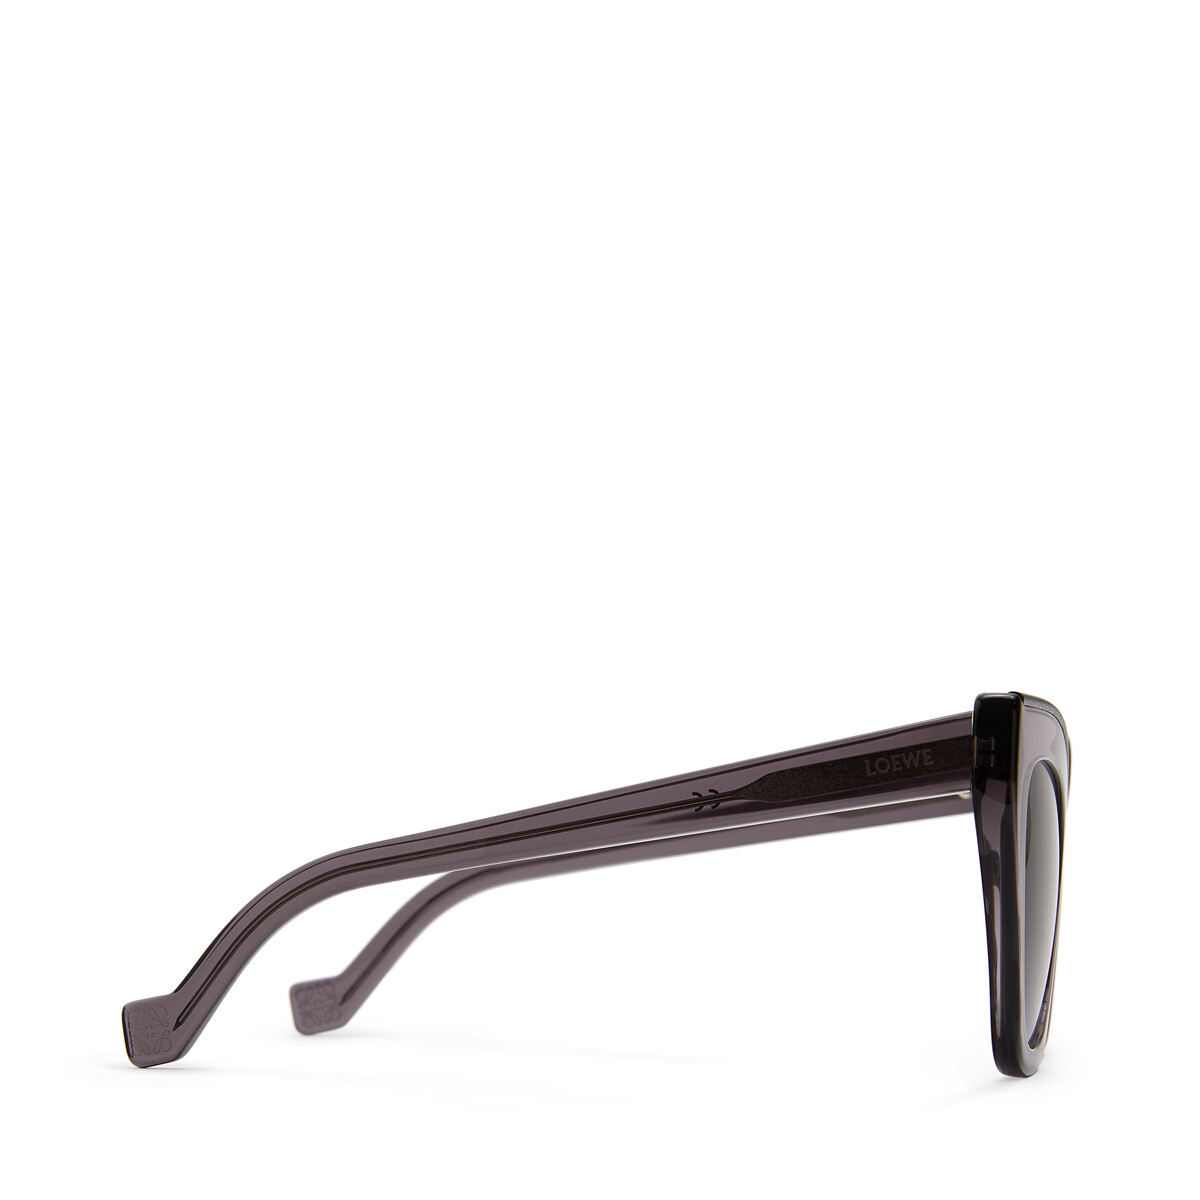 LOEWE Cateye Sunglasses Transparent Grey/Black front